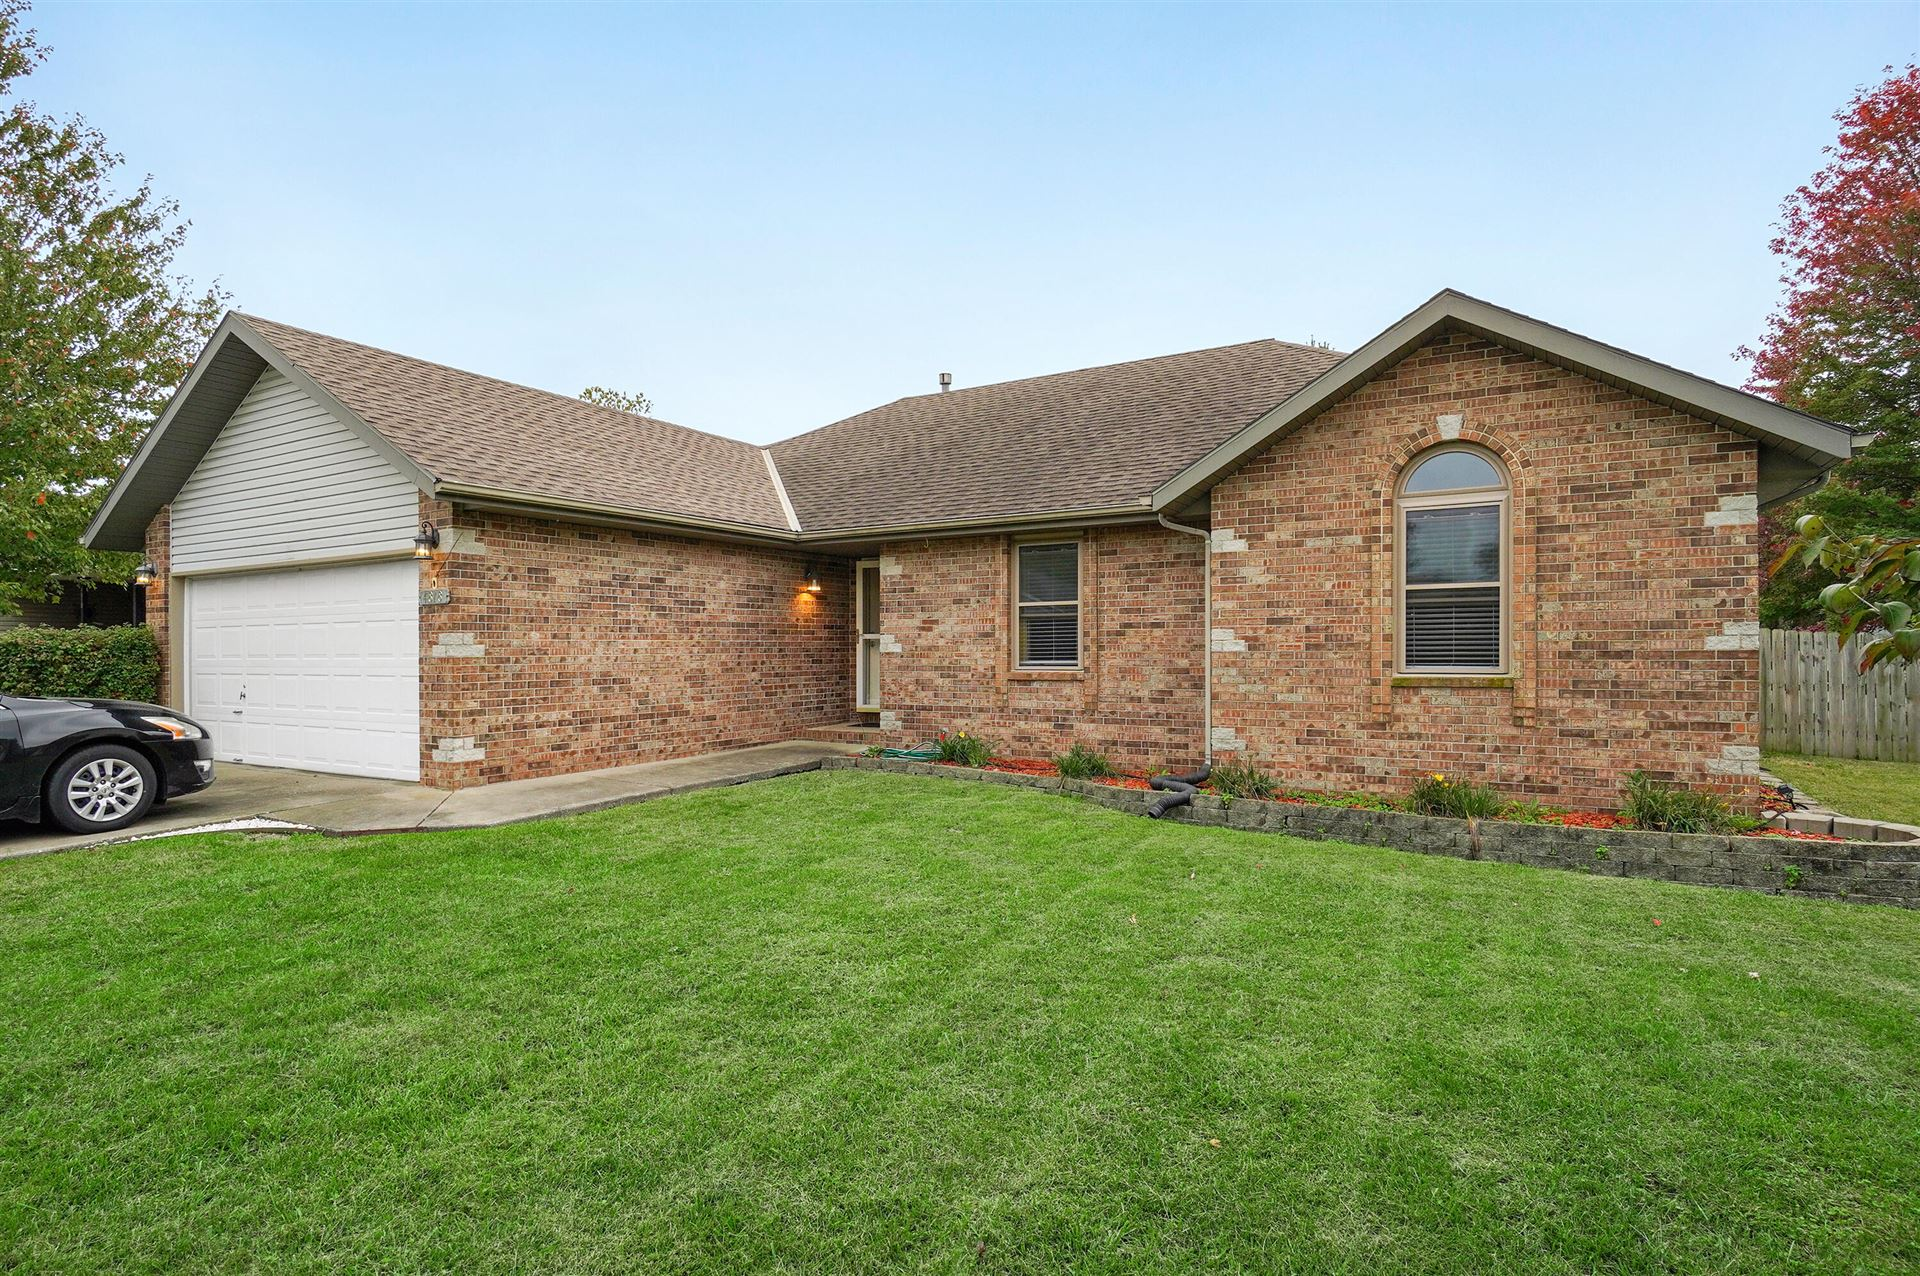 Photo of 4818 West Kathryn Court, Springfield, MO 65802 (MLS # 60203749)